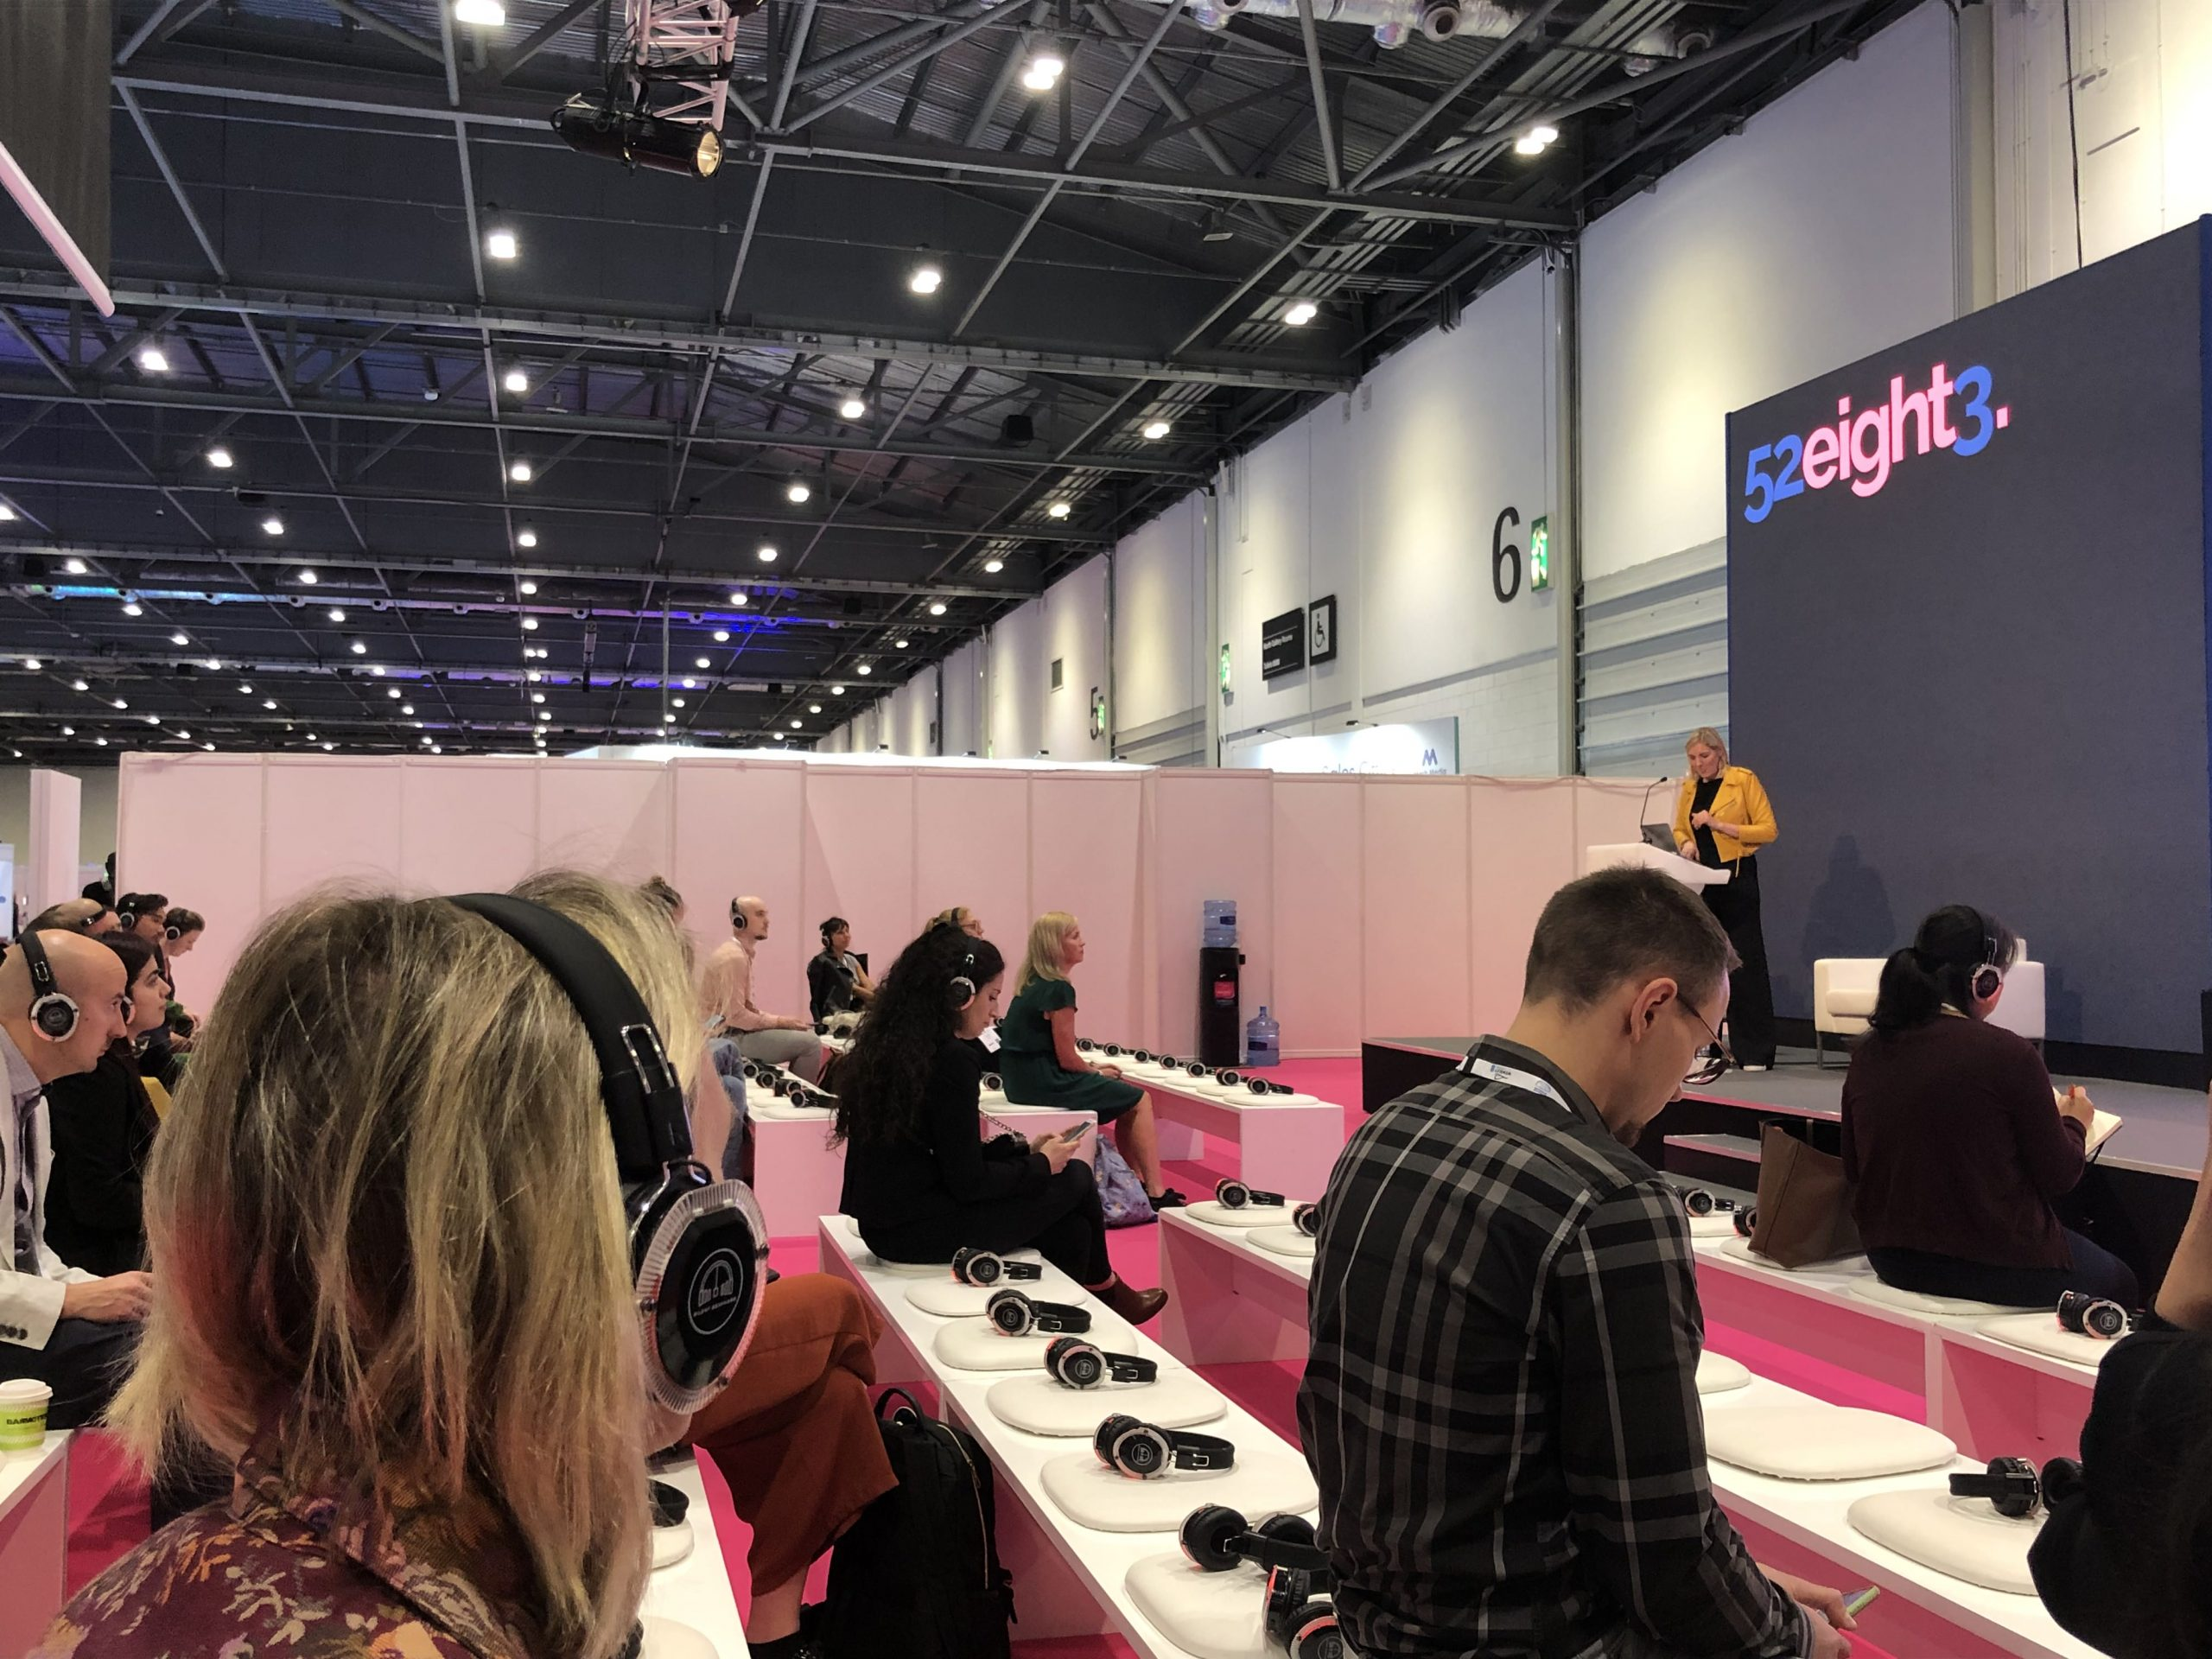 Silent Seminars wireless headphones used to listen to speak session in theatre at International Confex 2021,